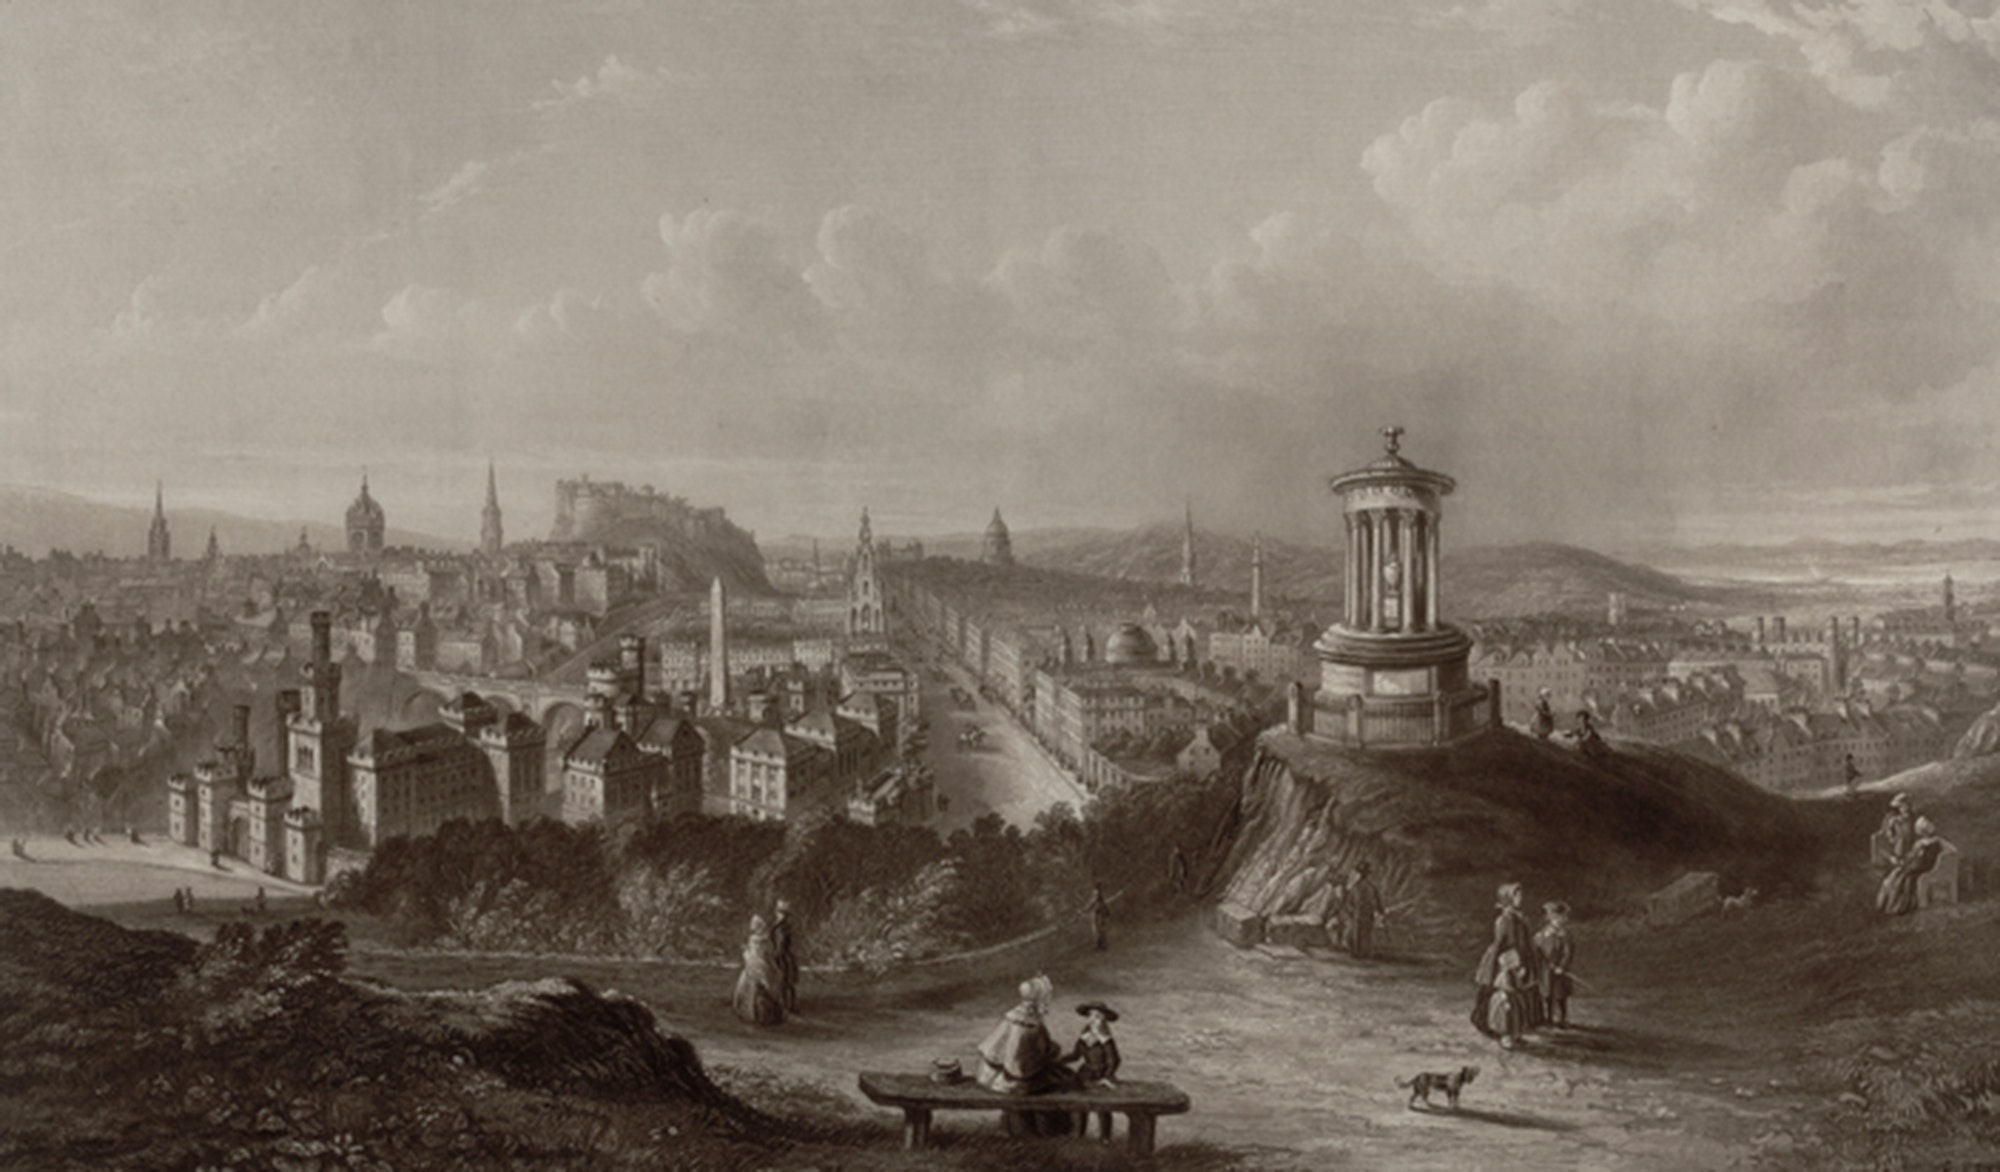 Edinburgh from Calton Hill, H.G. Duguid, 1840, c/o City of Edinburgh Council – Museums and Galleries www.capitalcollections.org.uk